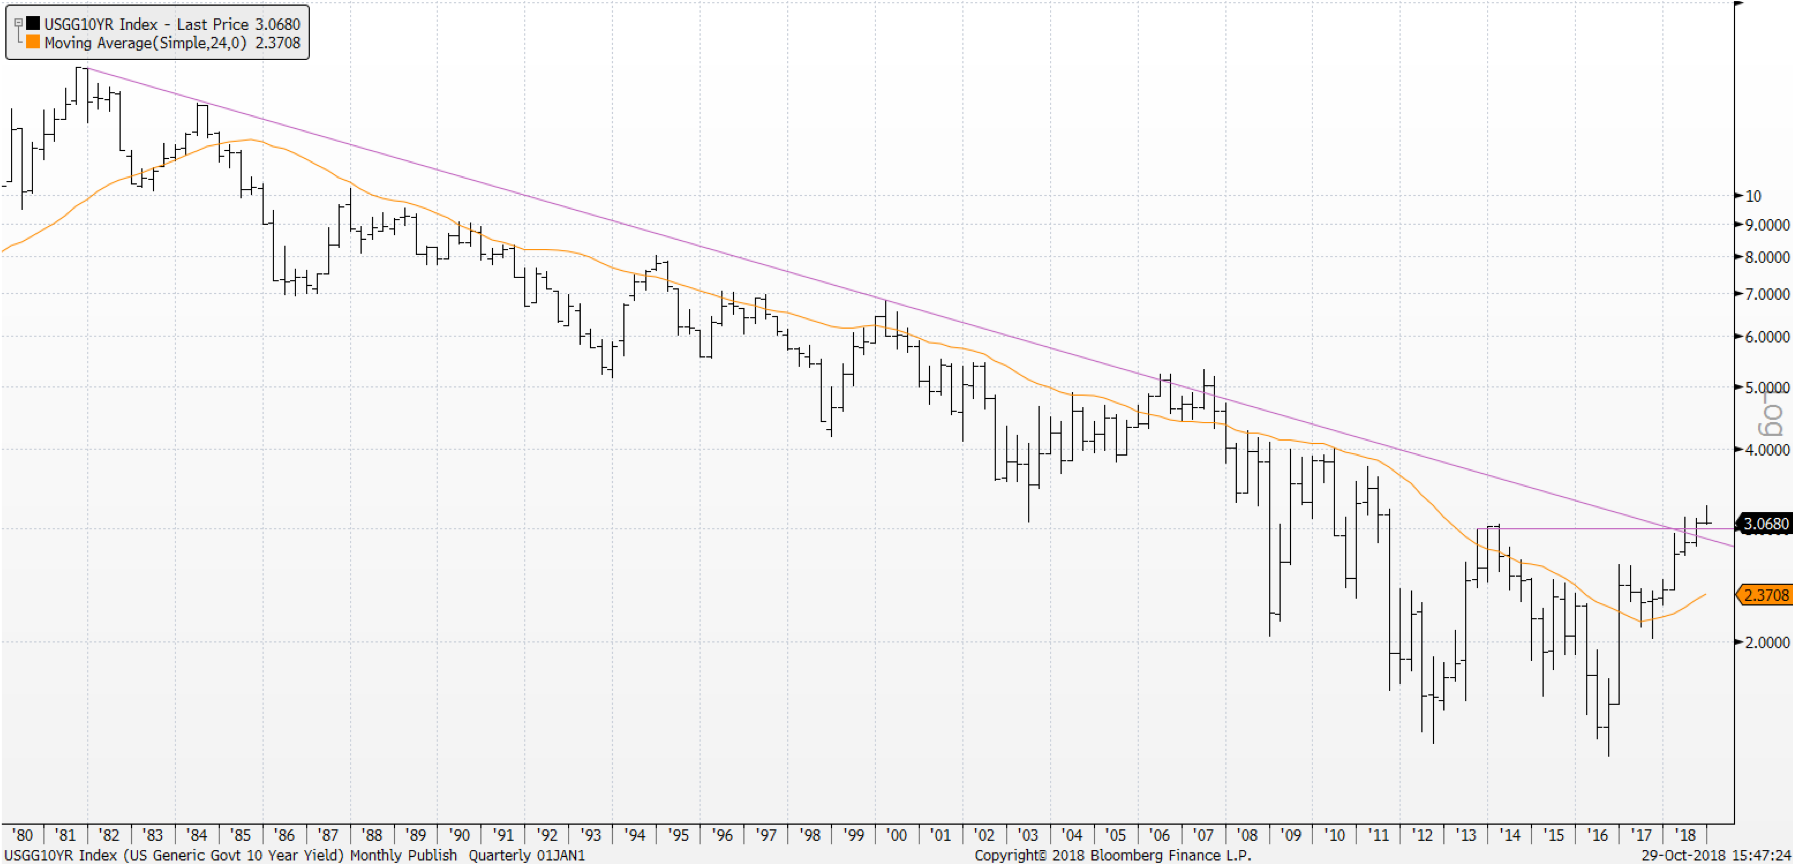 The Ten Year Yield has transitioned from a downtrend to a sideways trend to an uptrend.